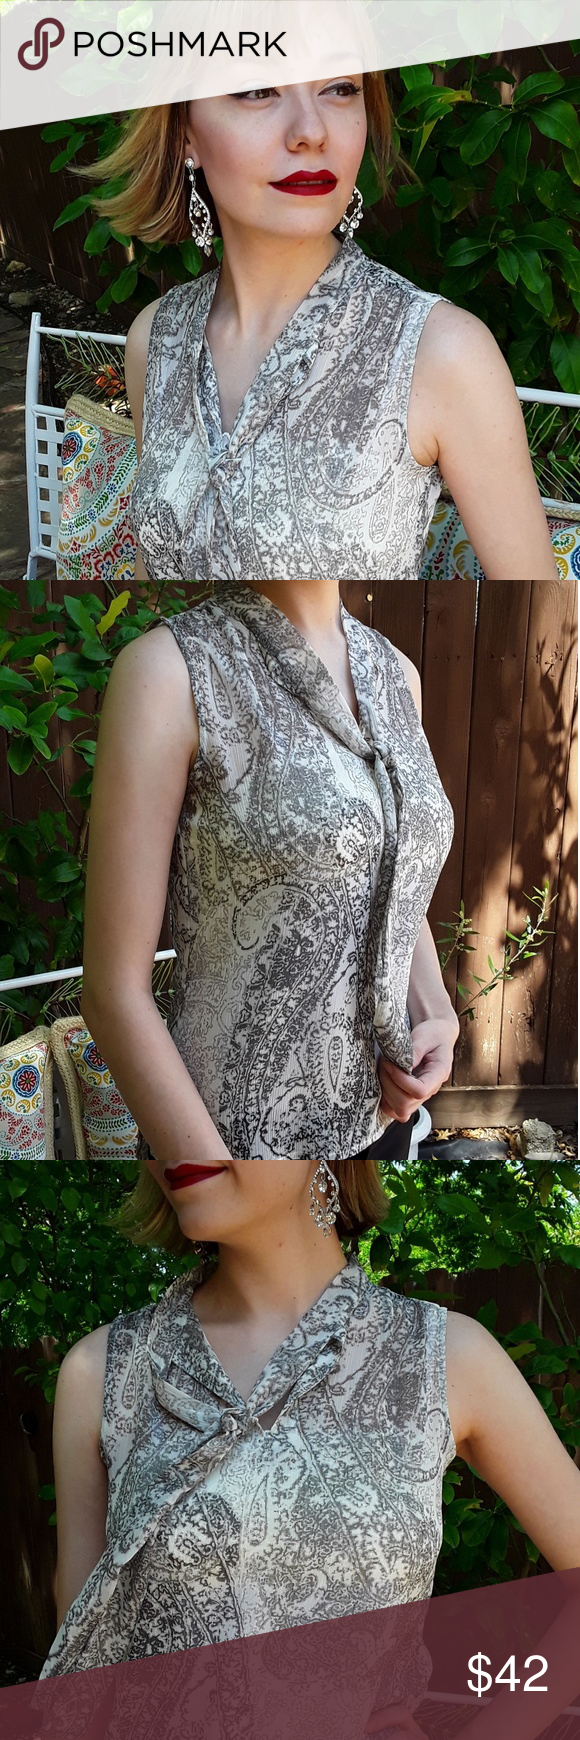 5aed8f08b81a Tommy Hilfiger Paisely Printed Top Sheer and tasteful sleeveless grey  paisley print. Tie front blouse